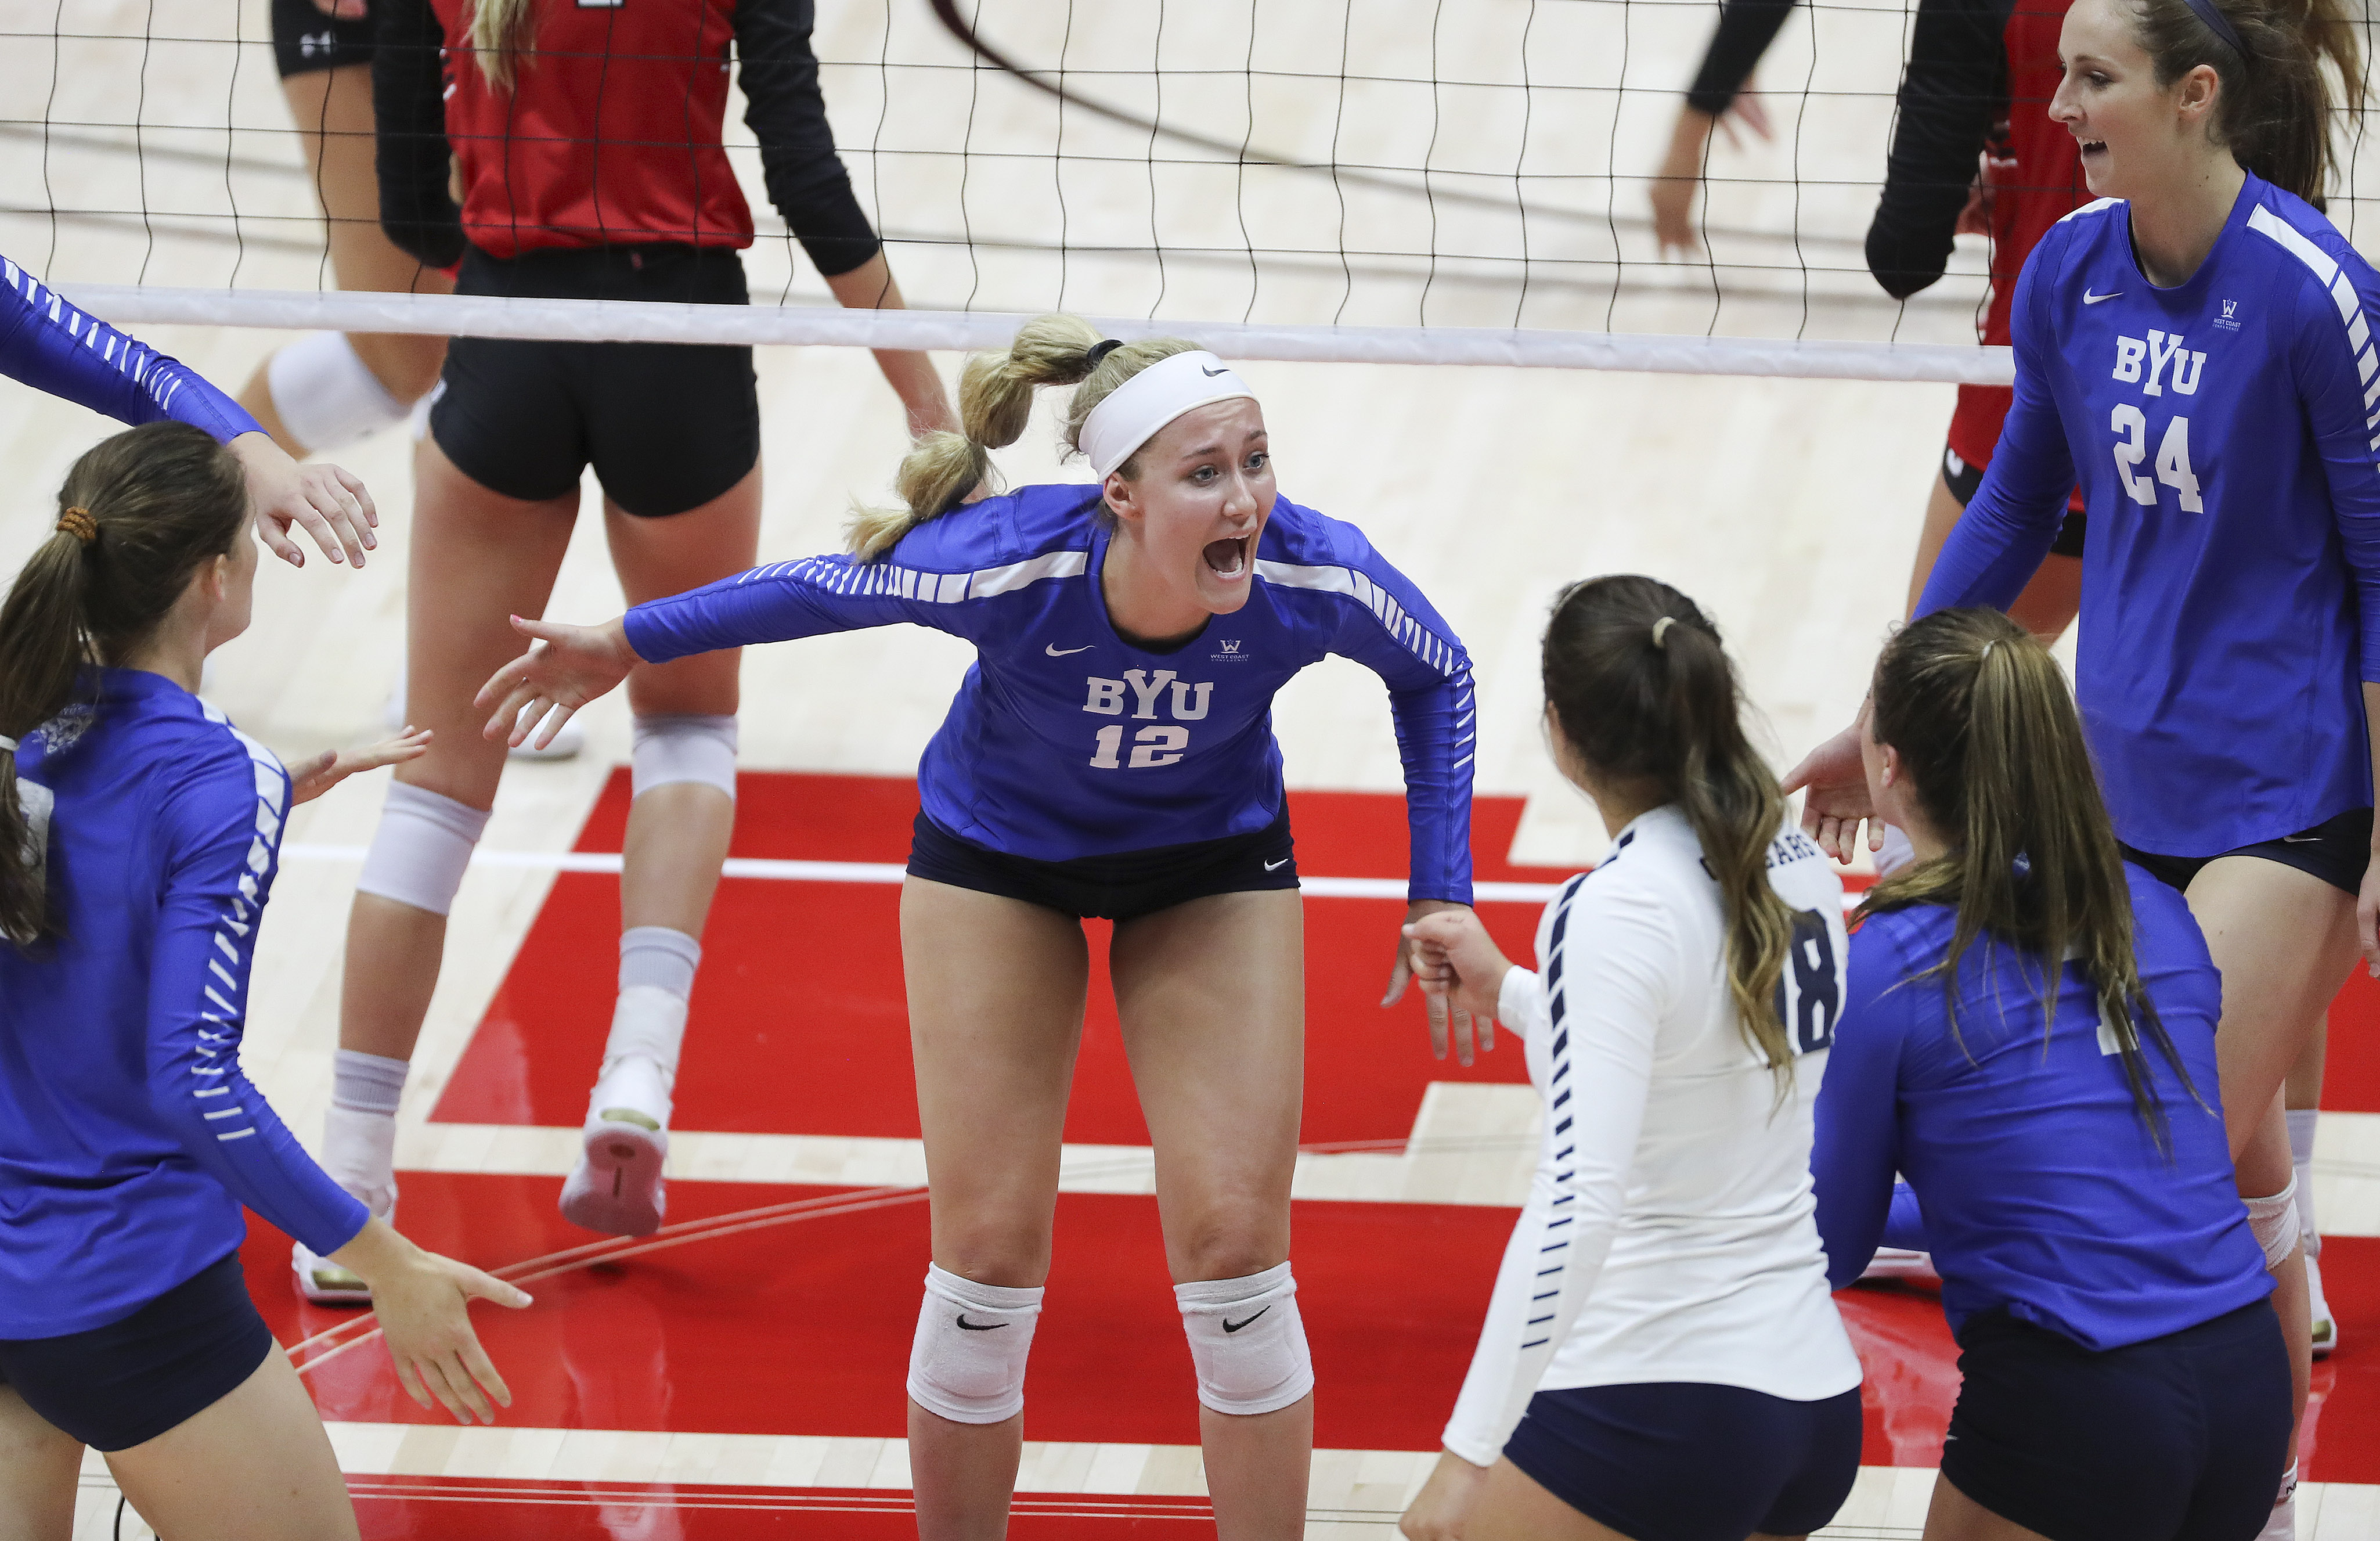 Brigham Young University's Kate Grimmer (12) shouts after a point against the University of Utah in volleyball in Salt Lake City on Thursday, Sept. 19, 2019.